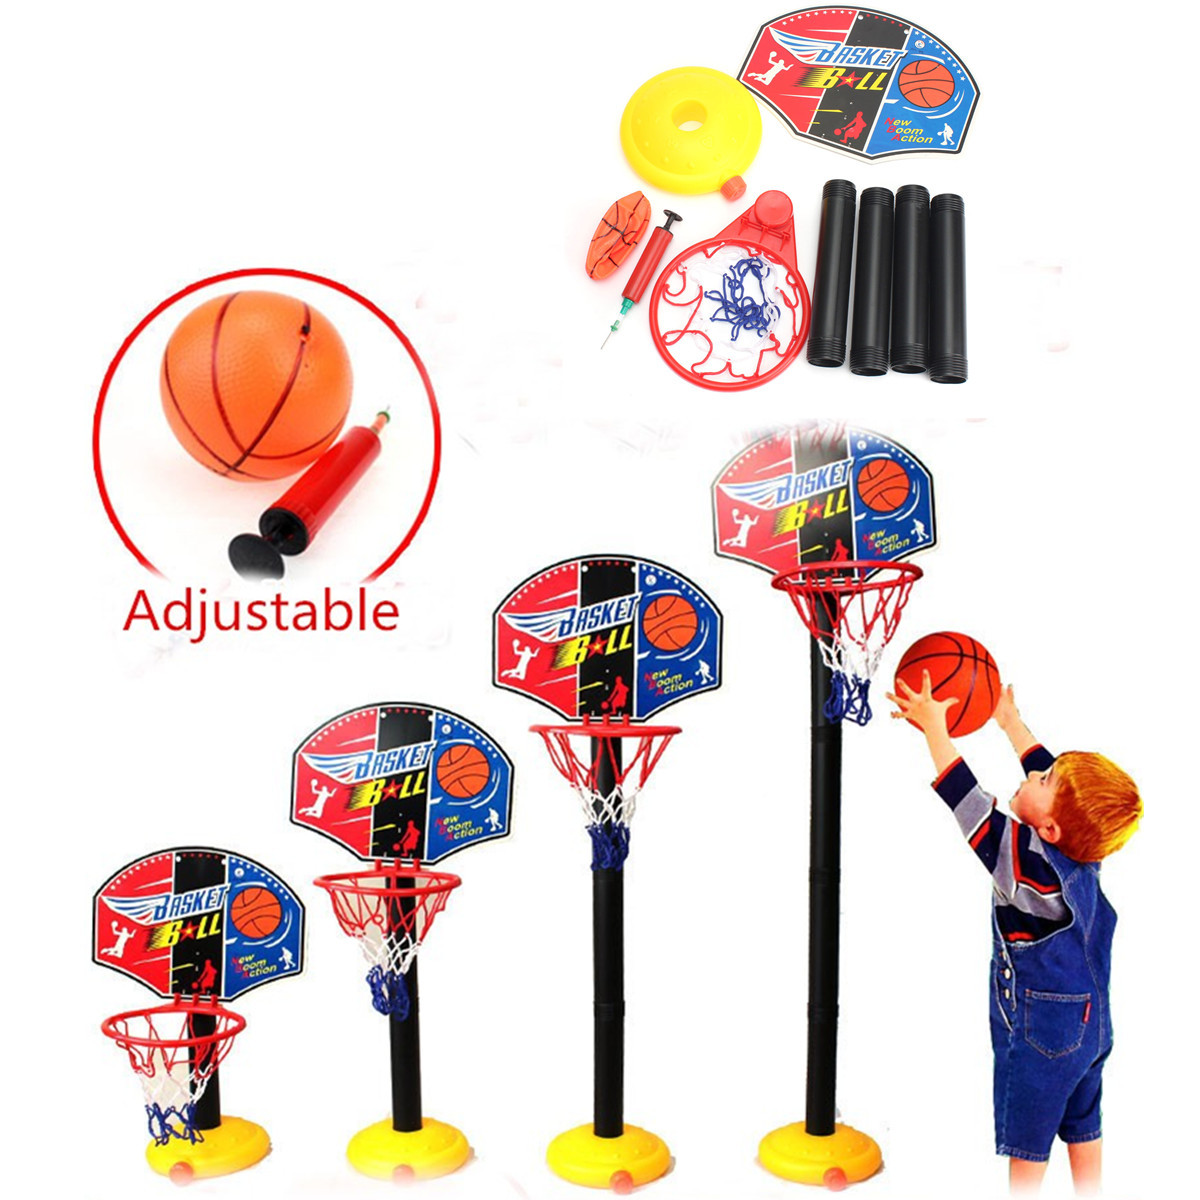 Adjustable Mini Backboard Hoop Net Set with Basketball Indoor Outdoor Sports Toy Gift For Child Kids